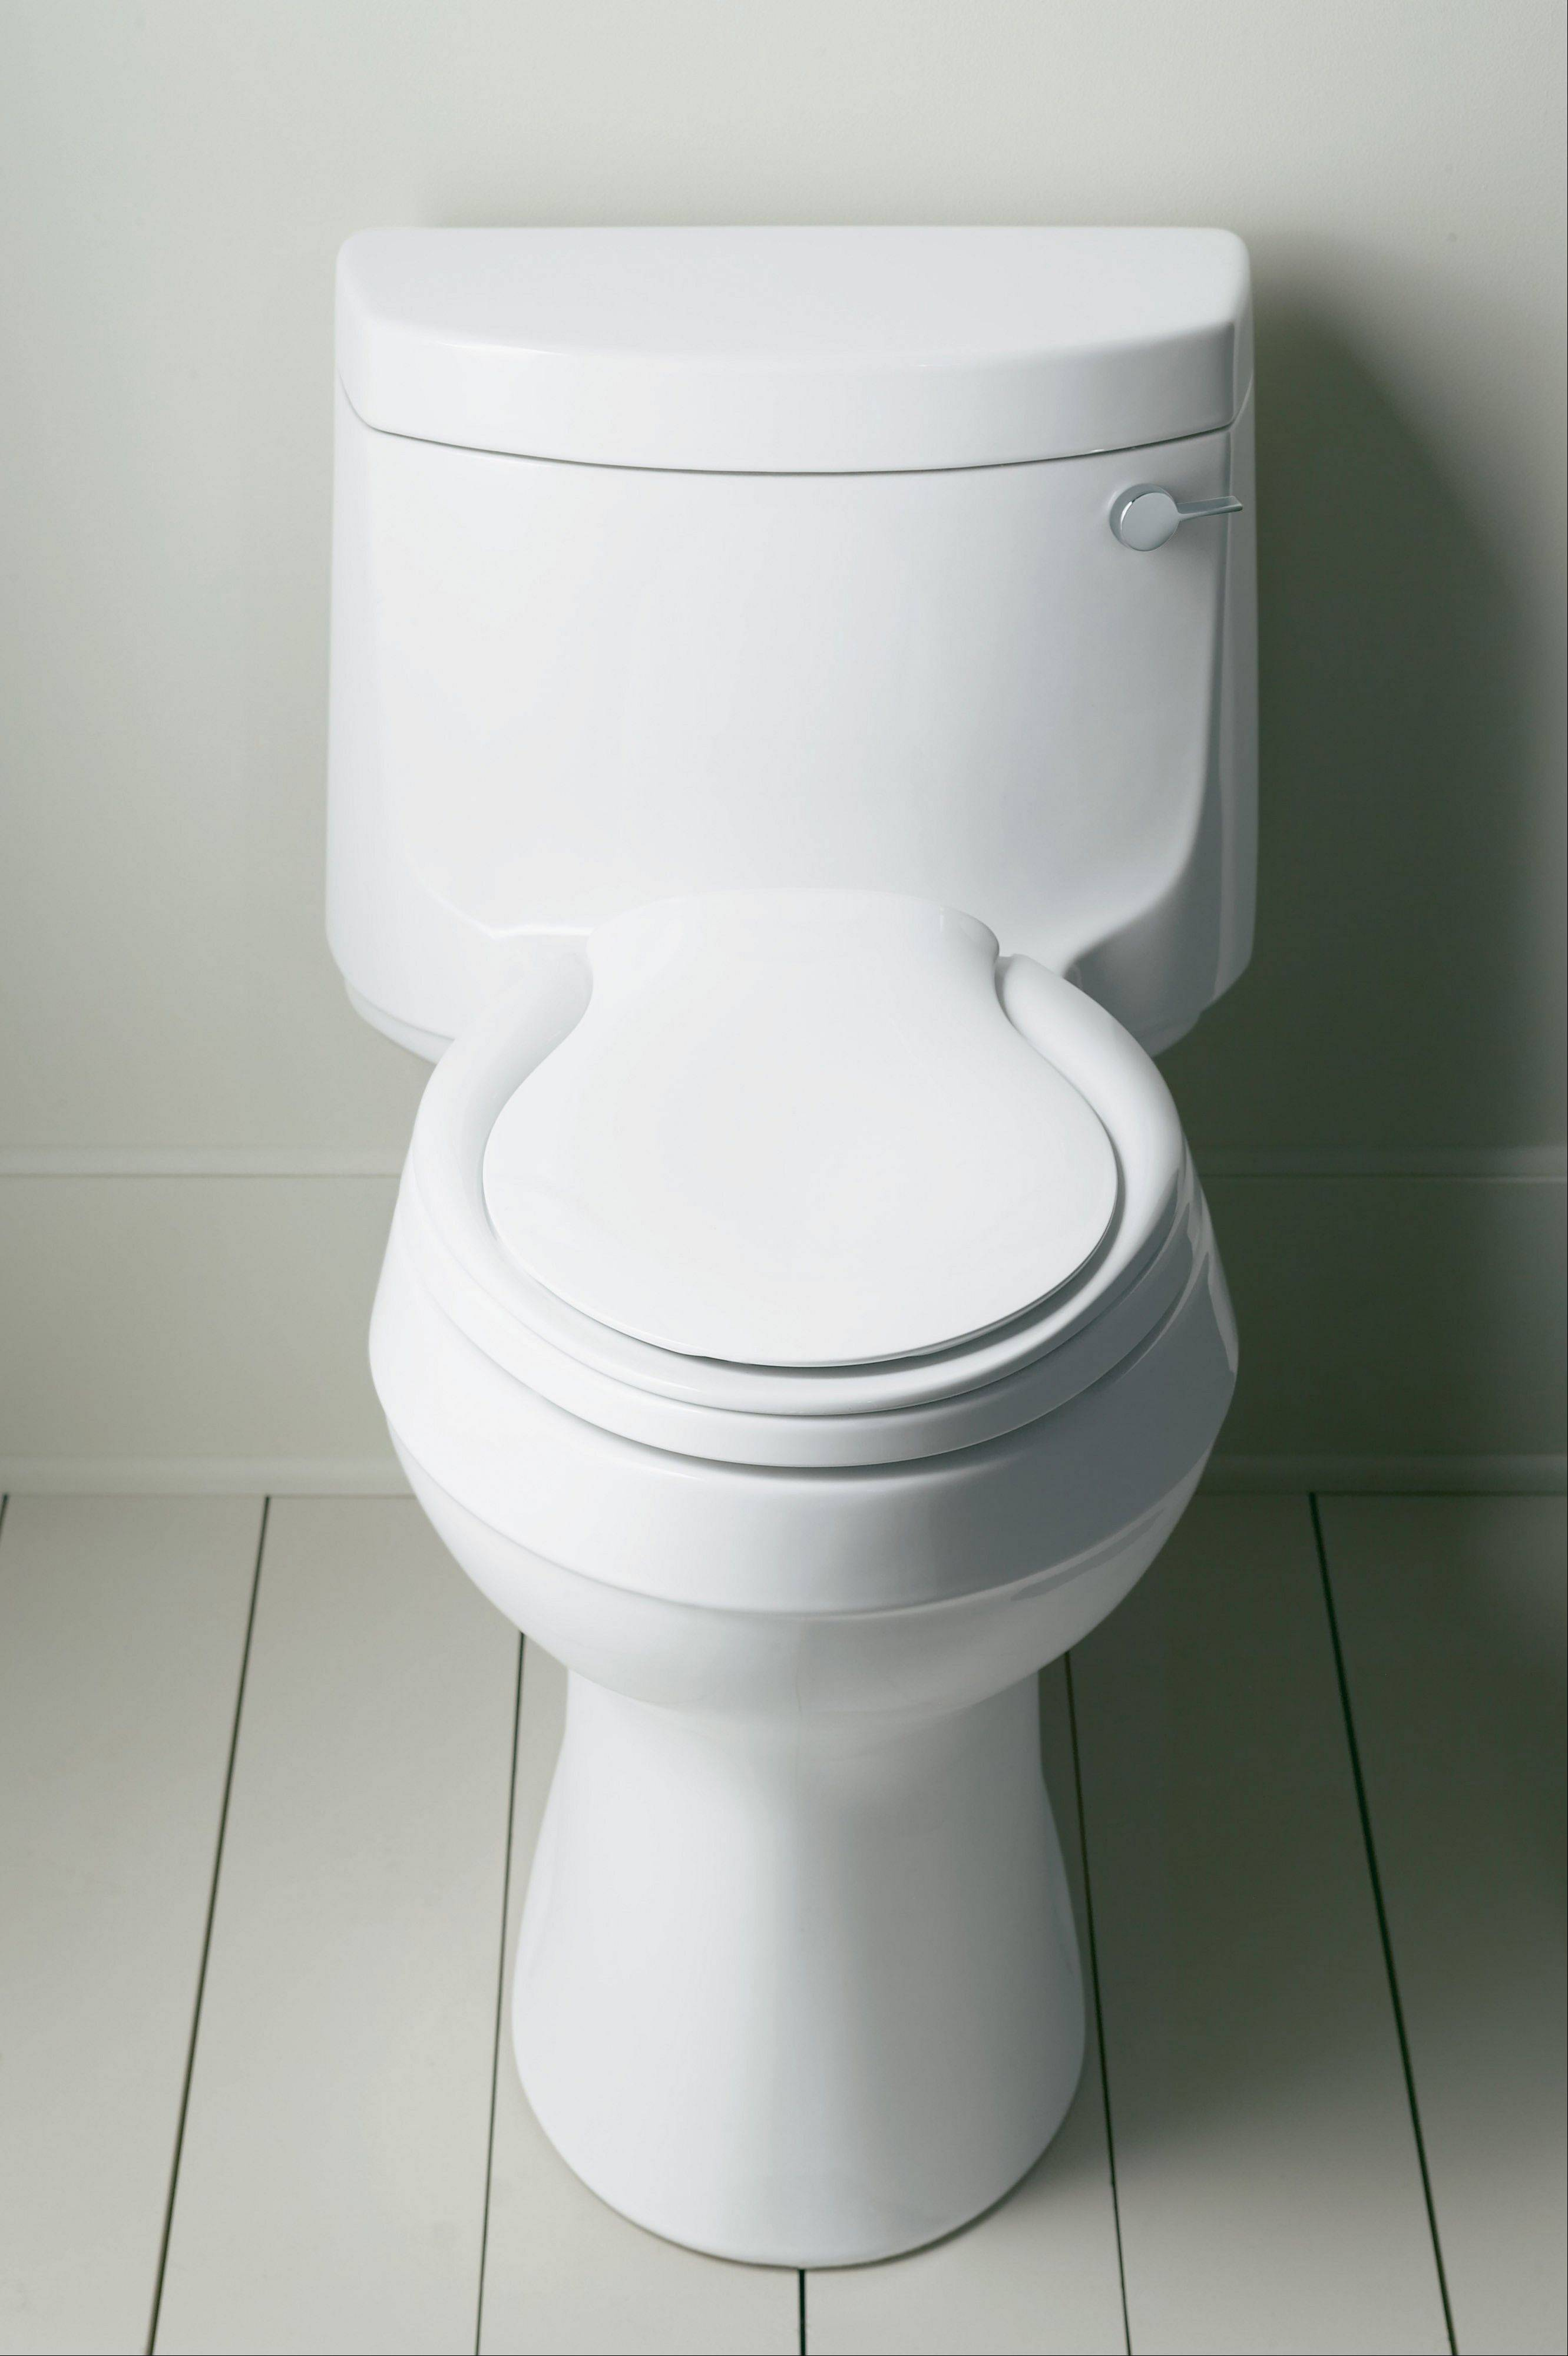 The biggest advantage of a one-piece toilet is it can be much easier to clean.